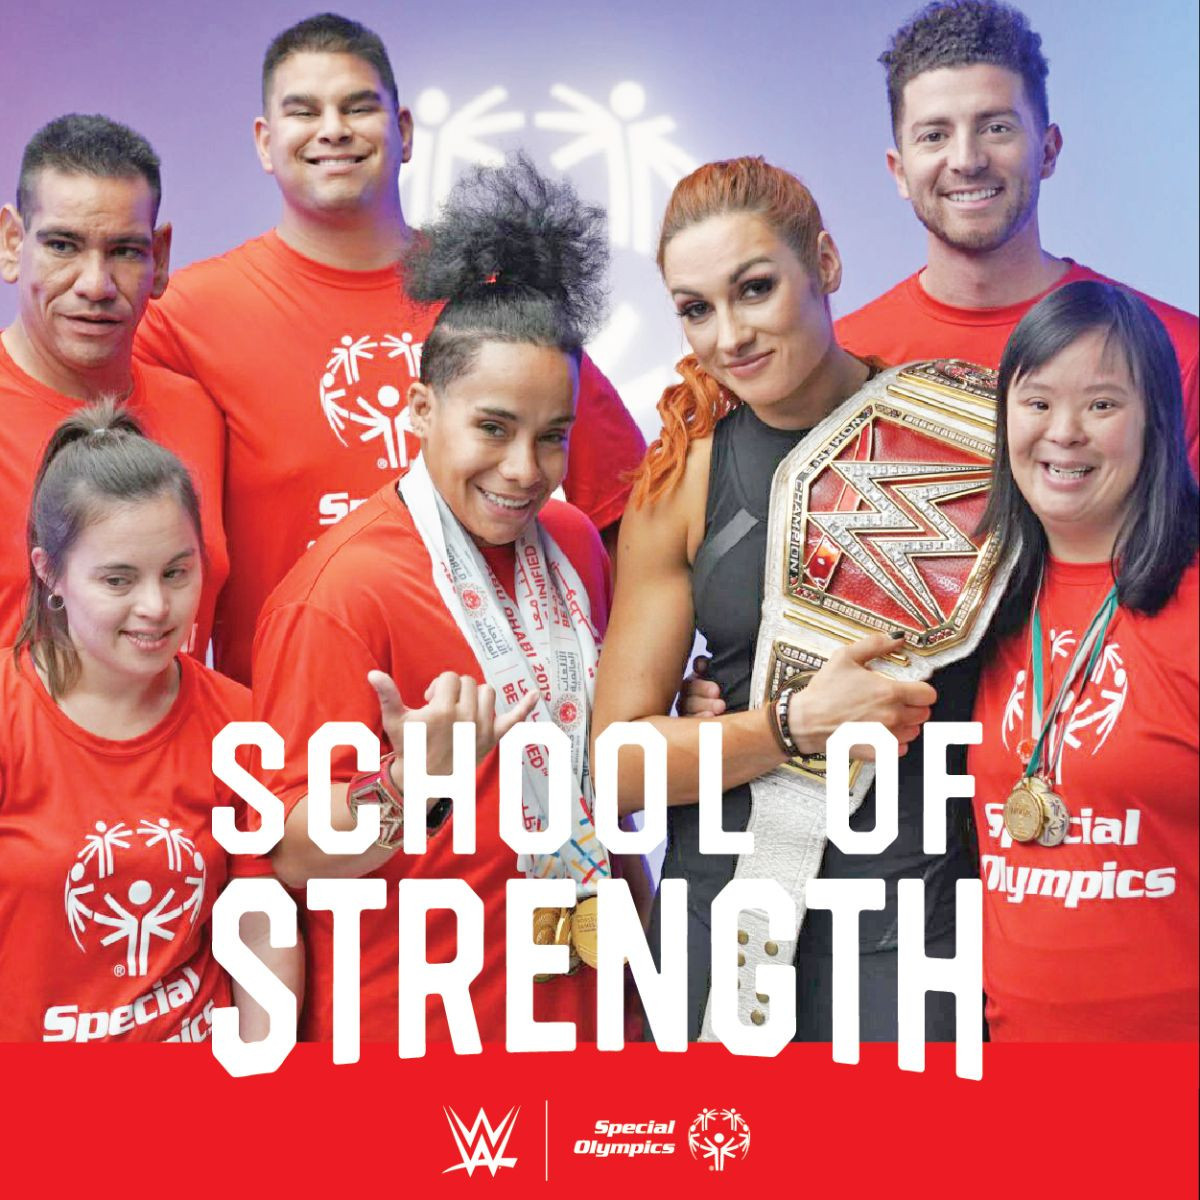 WWE star Becky Lynch features in workout videos alongside six Special Olympics athletes ©Special Olympics